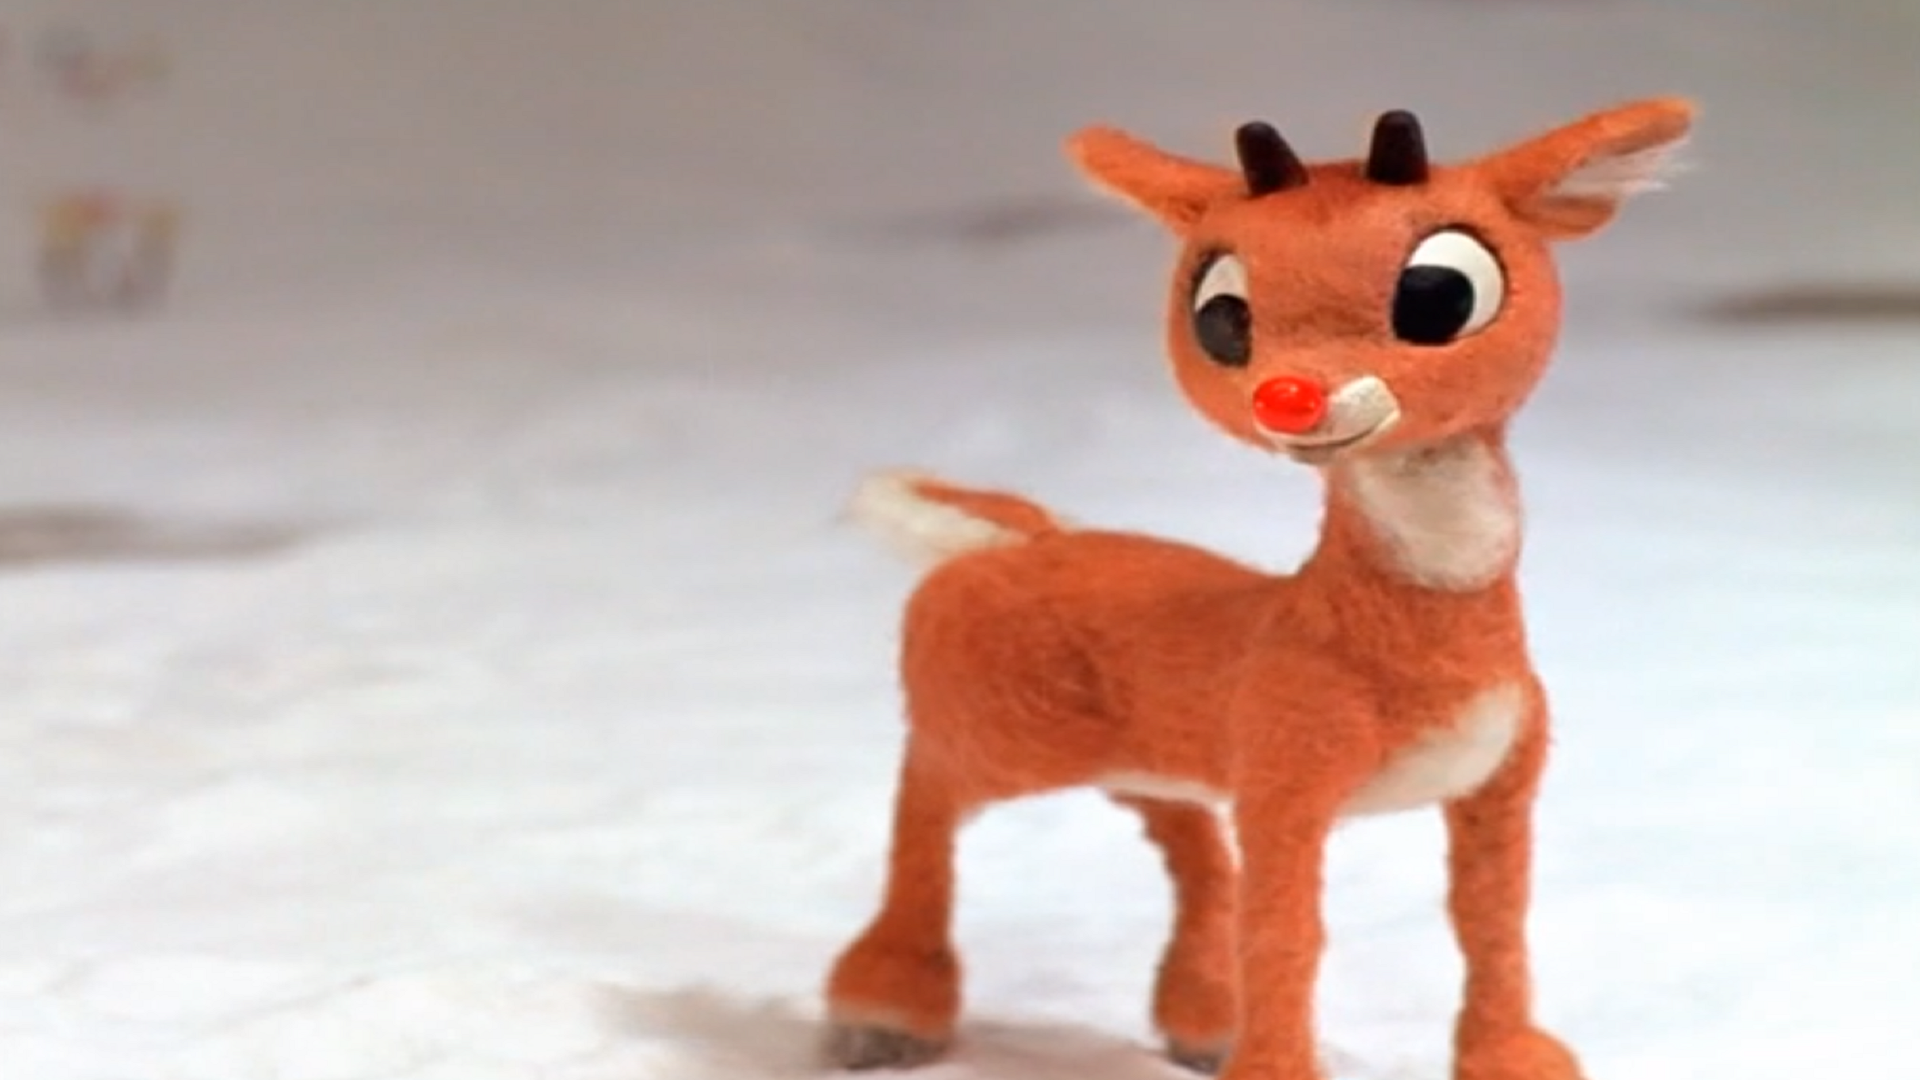 watch rudolph the red nosed reindeer prime video watch rudolph the red nosed reindeer